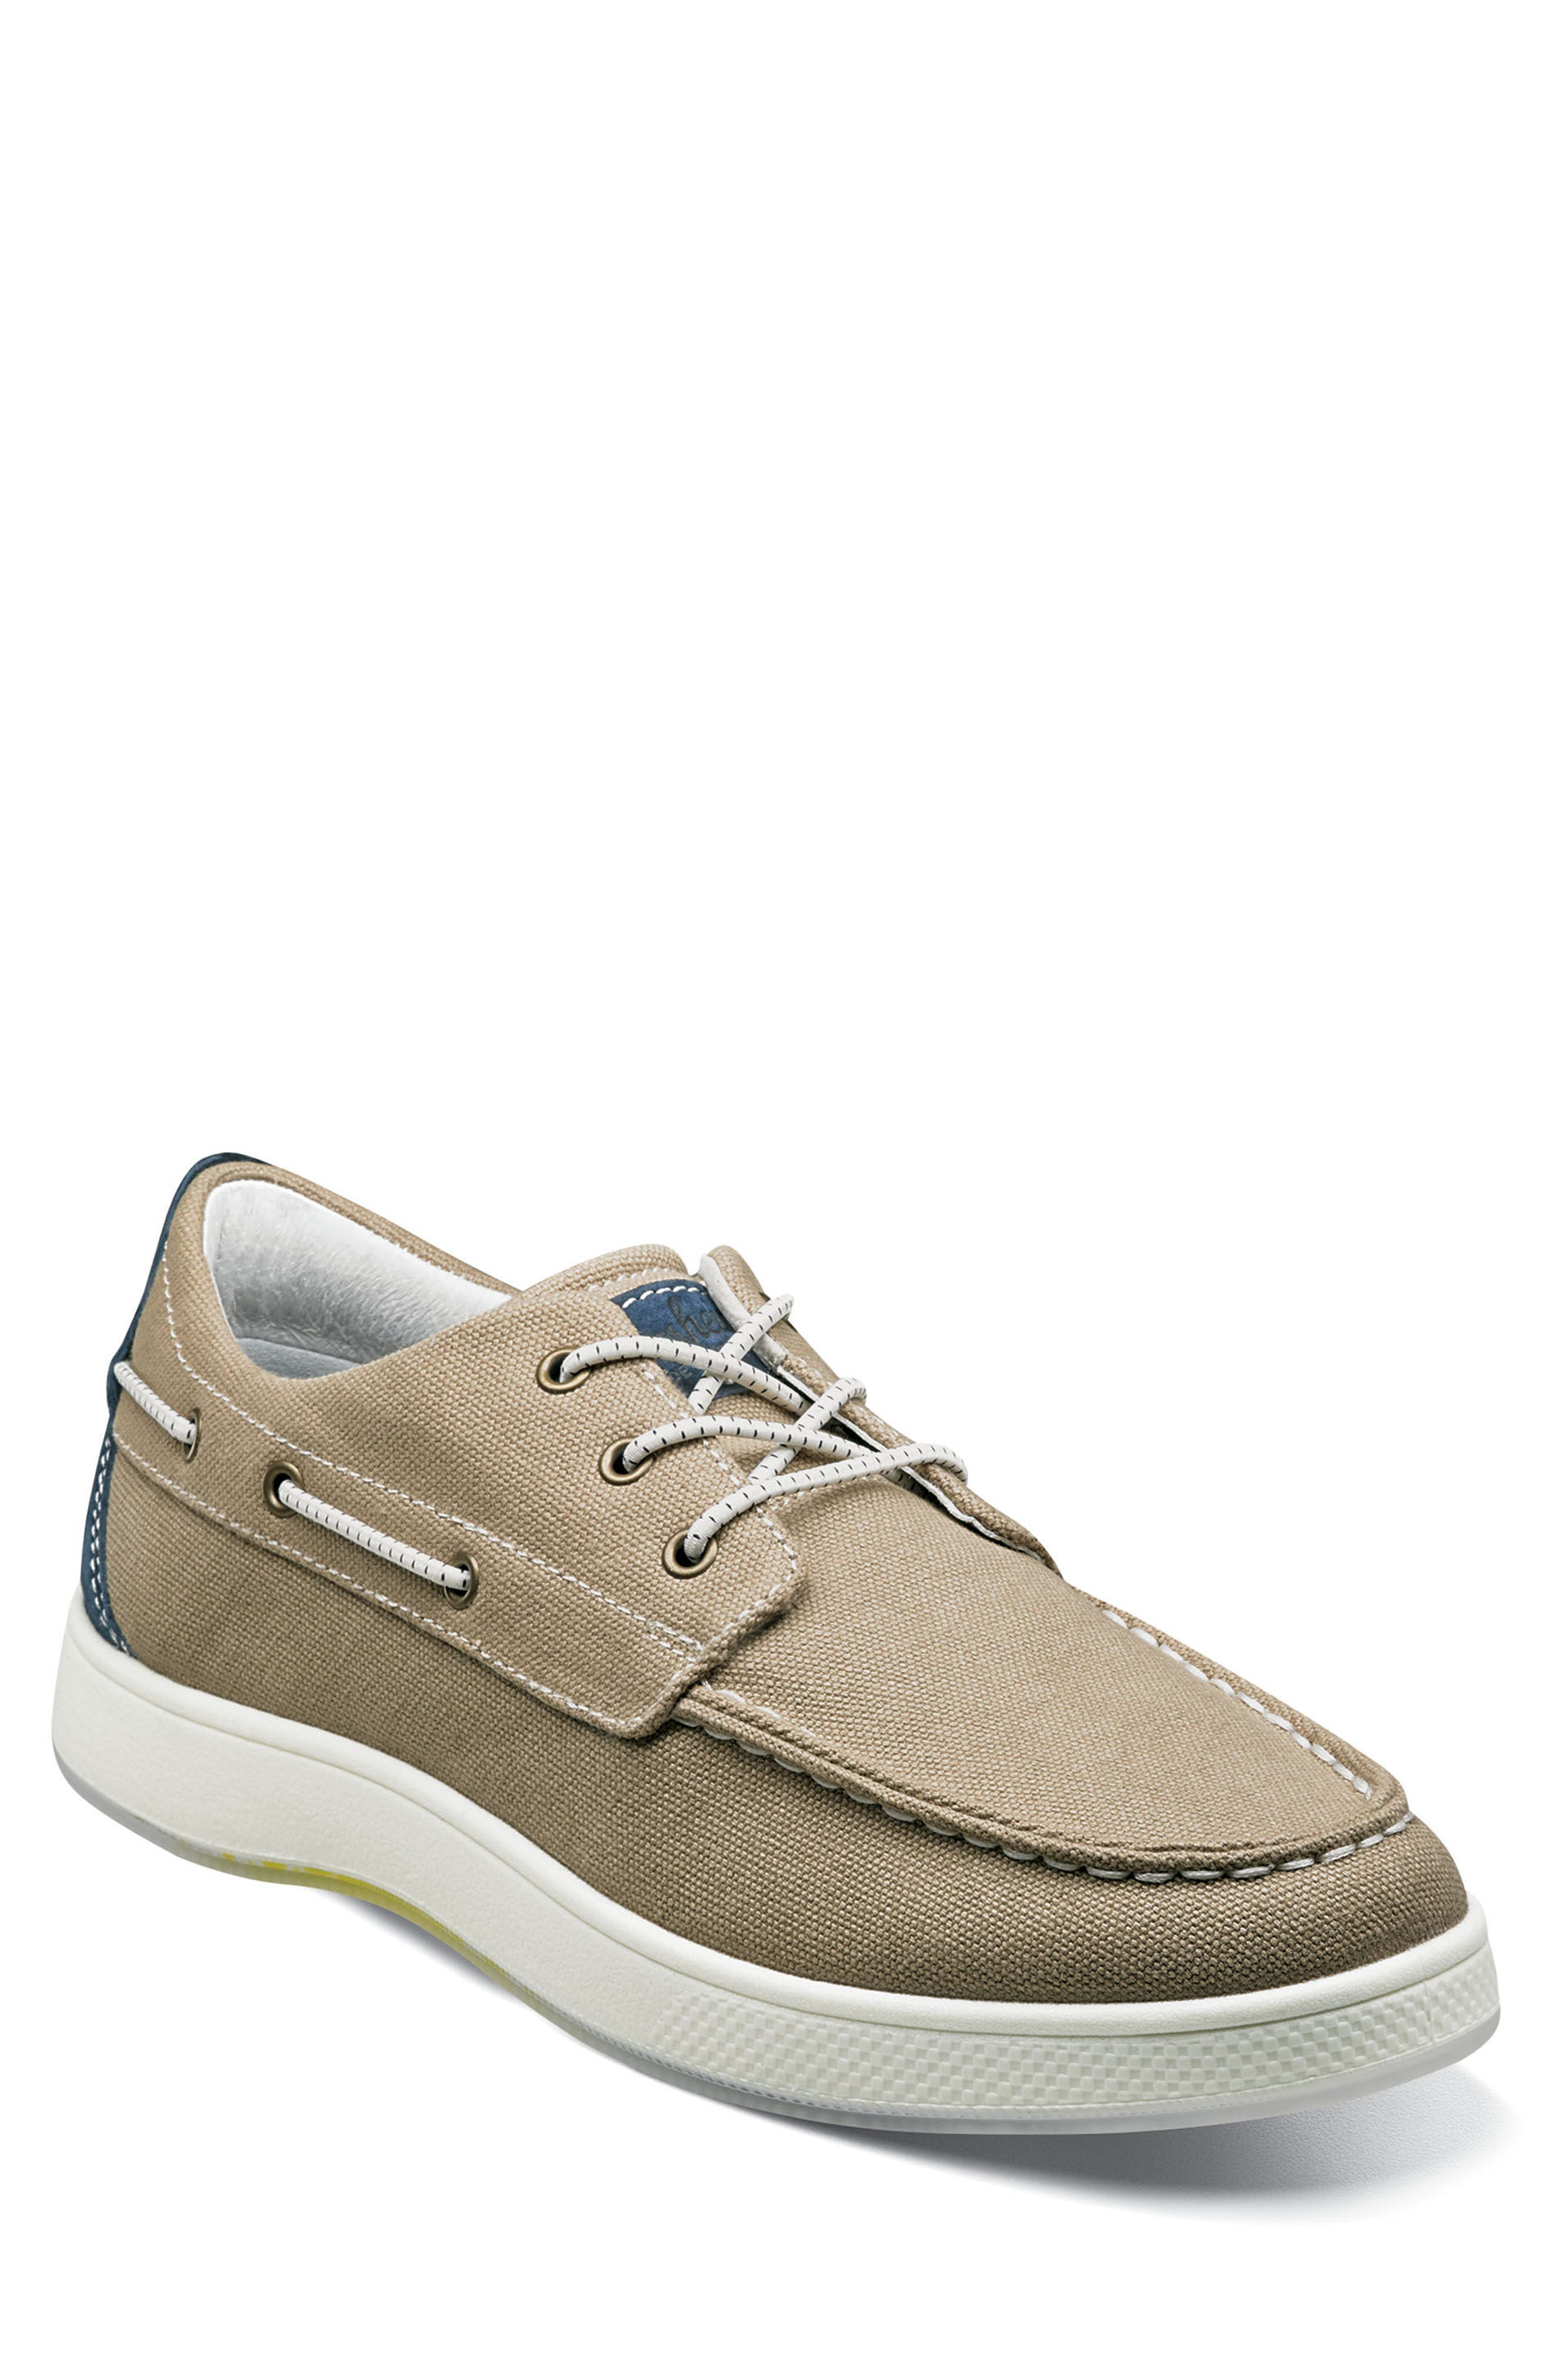 FLORSHEIM,                             Edge Boat Shoe,                             Main thumbnail 1, color,                             KHAKI CANVAS